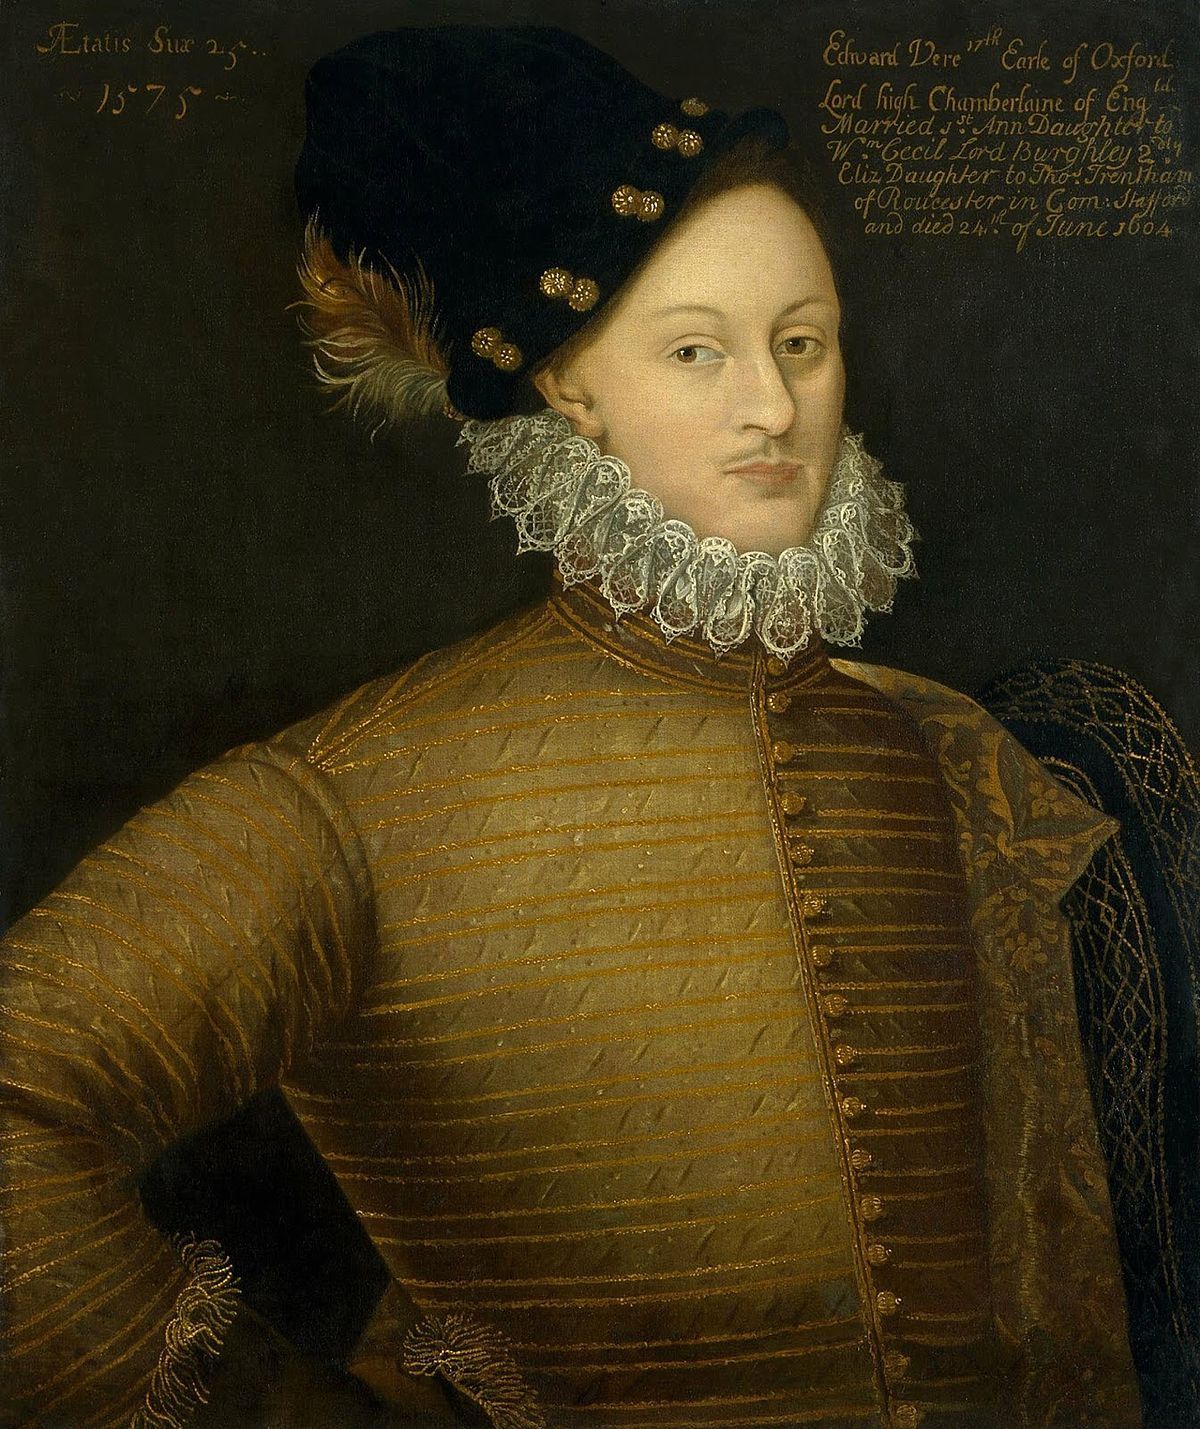 https://upload.wikimedia.org/wikipedia/commons/thumb/8/8f/Edward-de-Vere-1575.jpg/1200px-Edward-de-Vere-1575.jpg